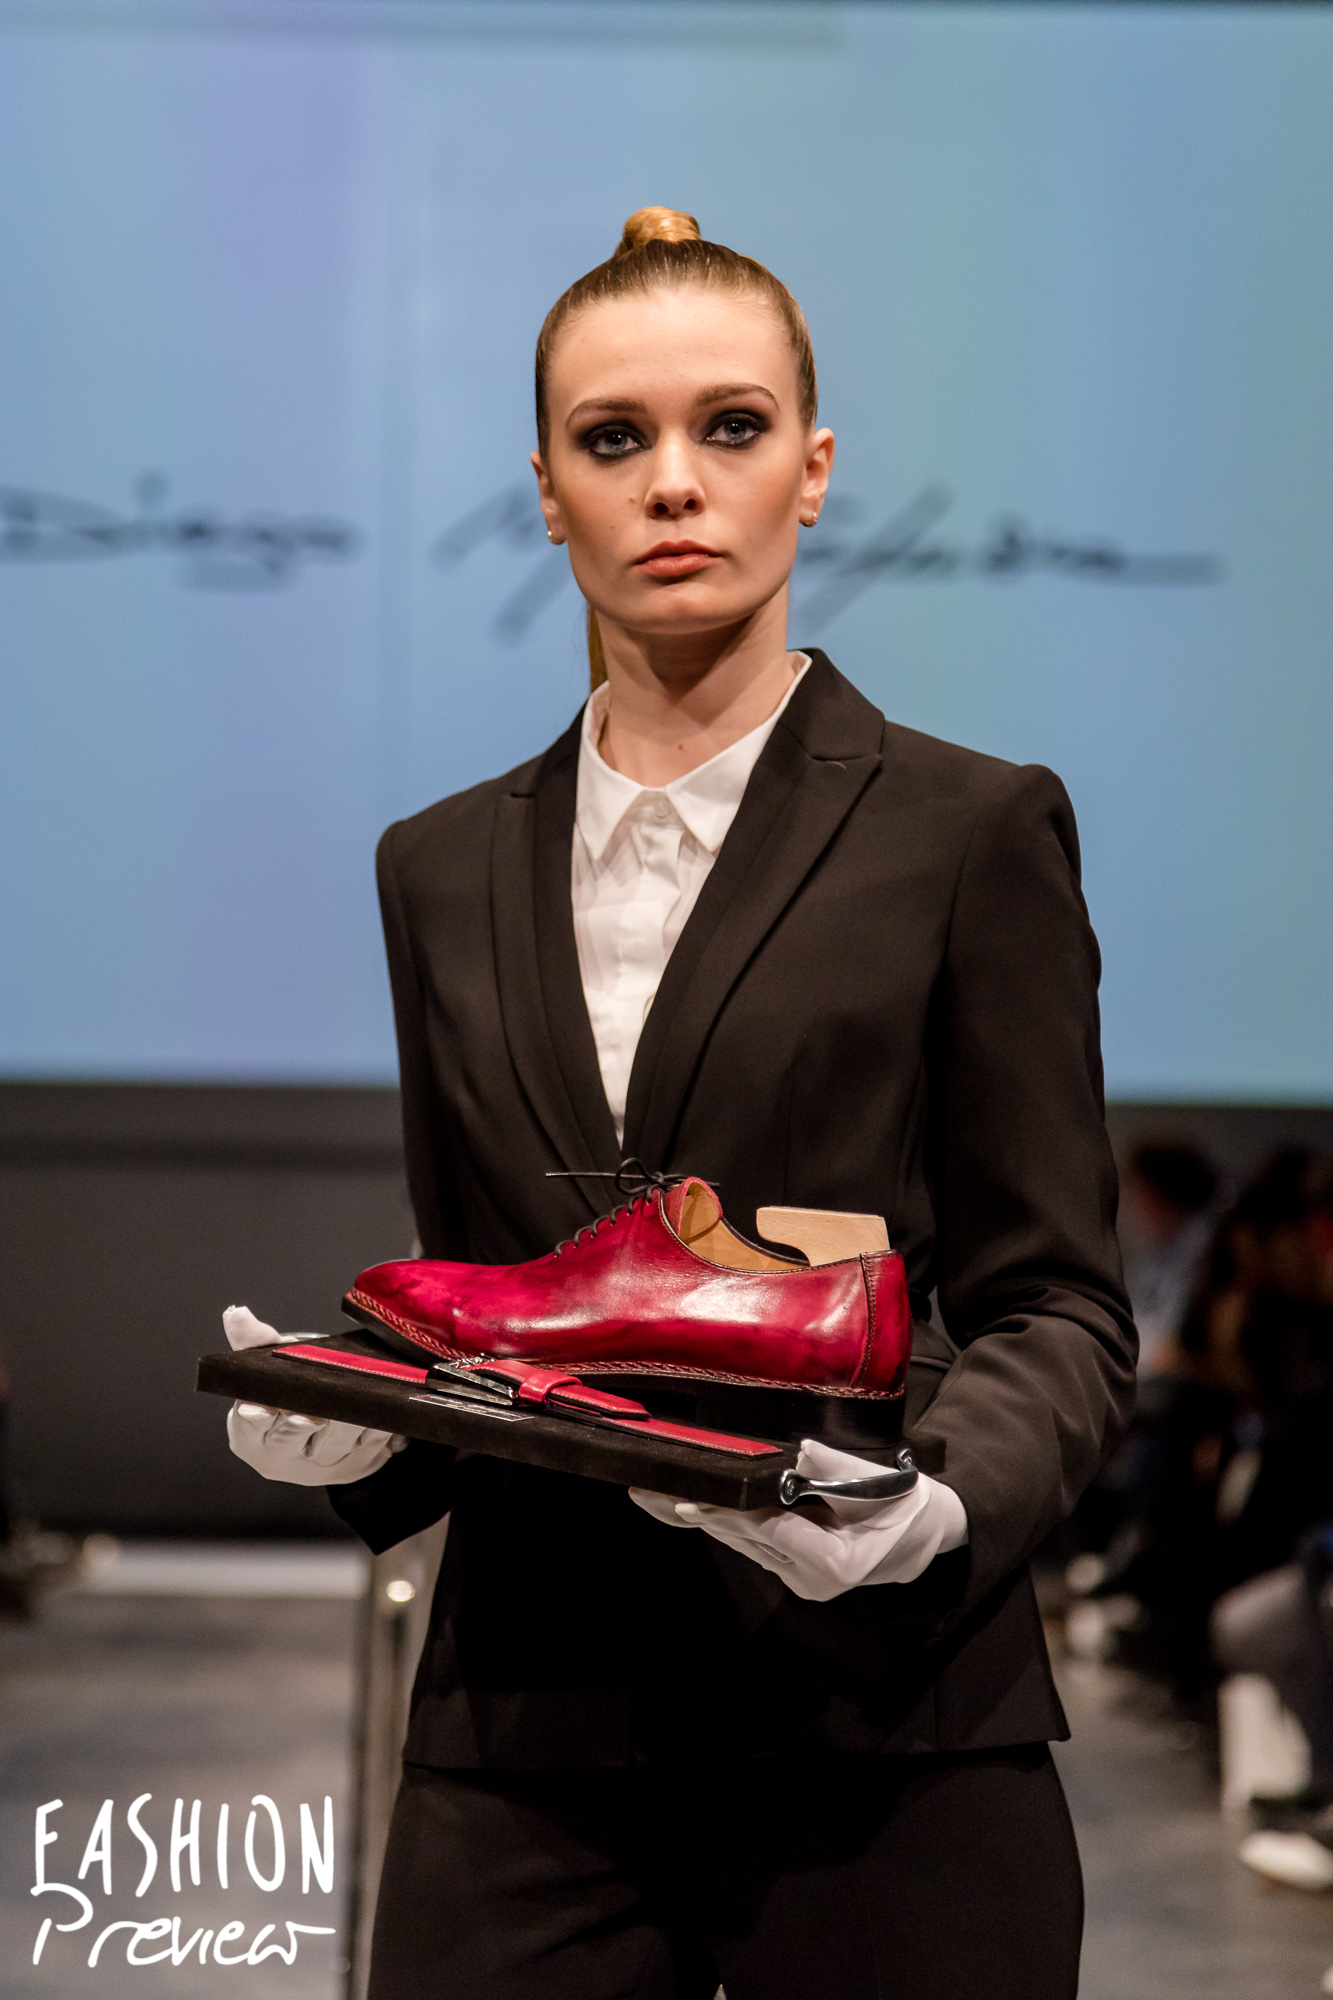 Fashion Preview 9 - Diego Montefusco-15.jpg